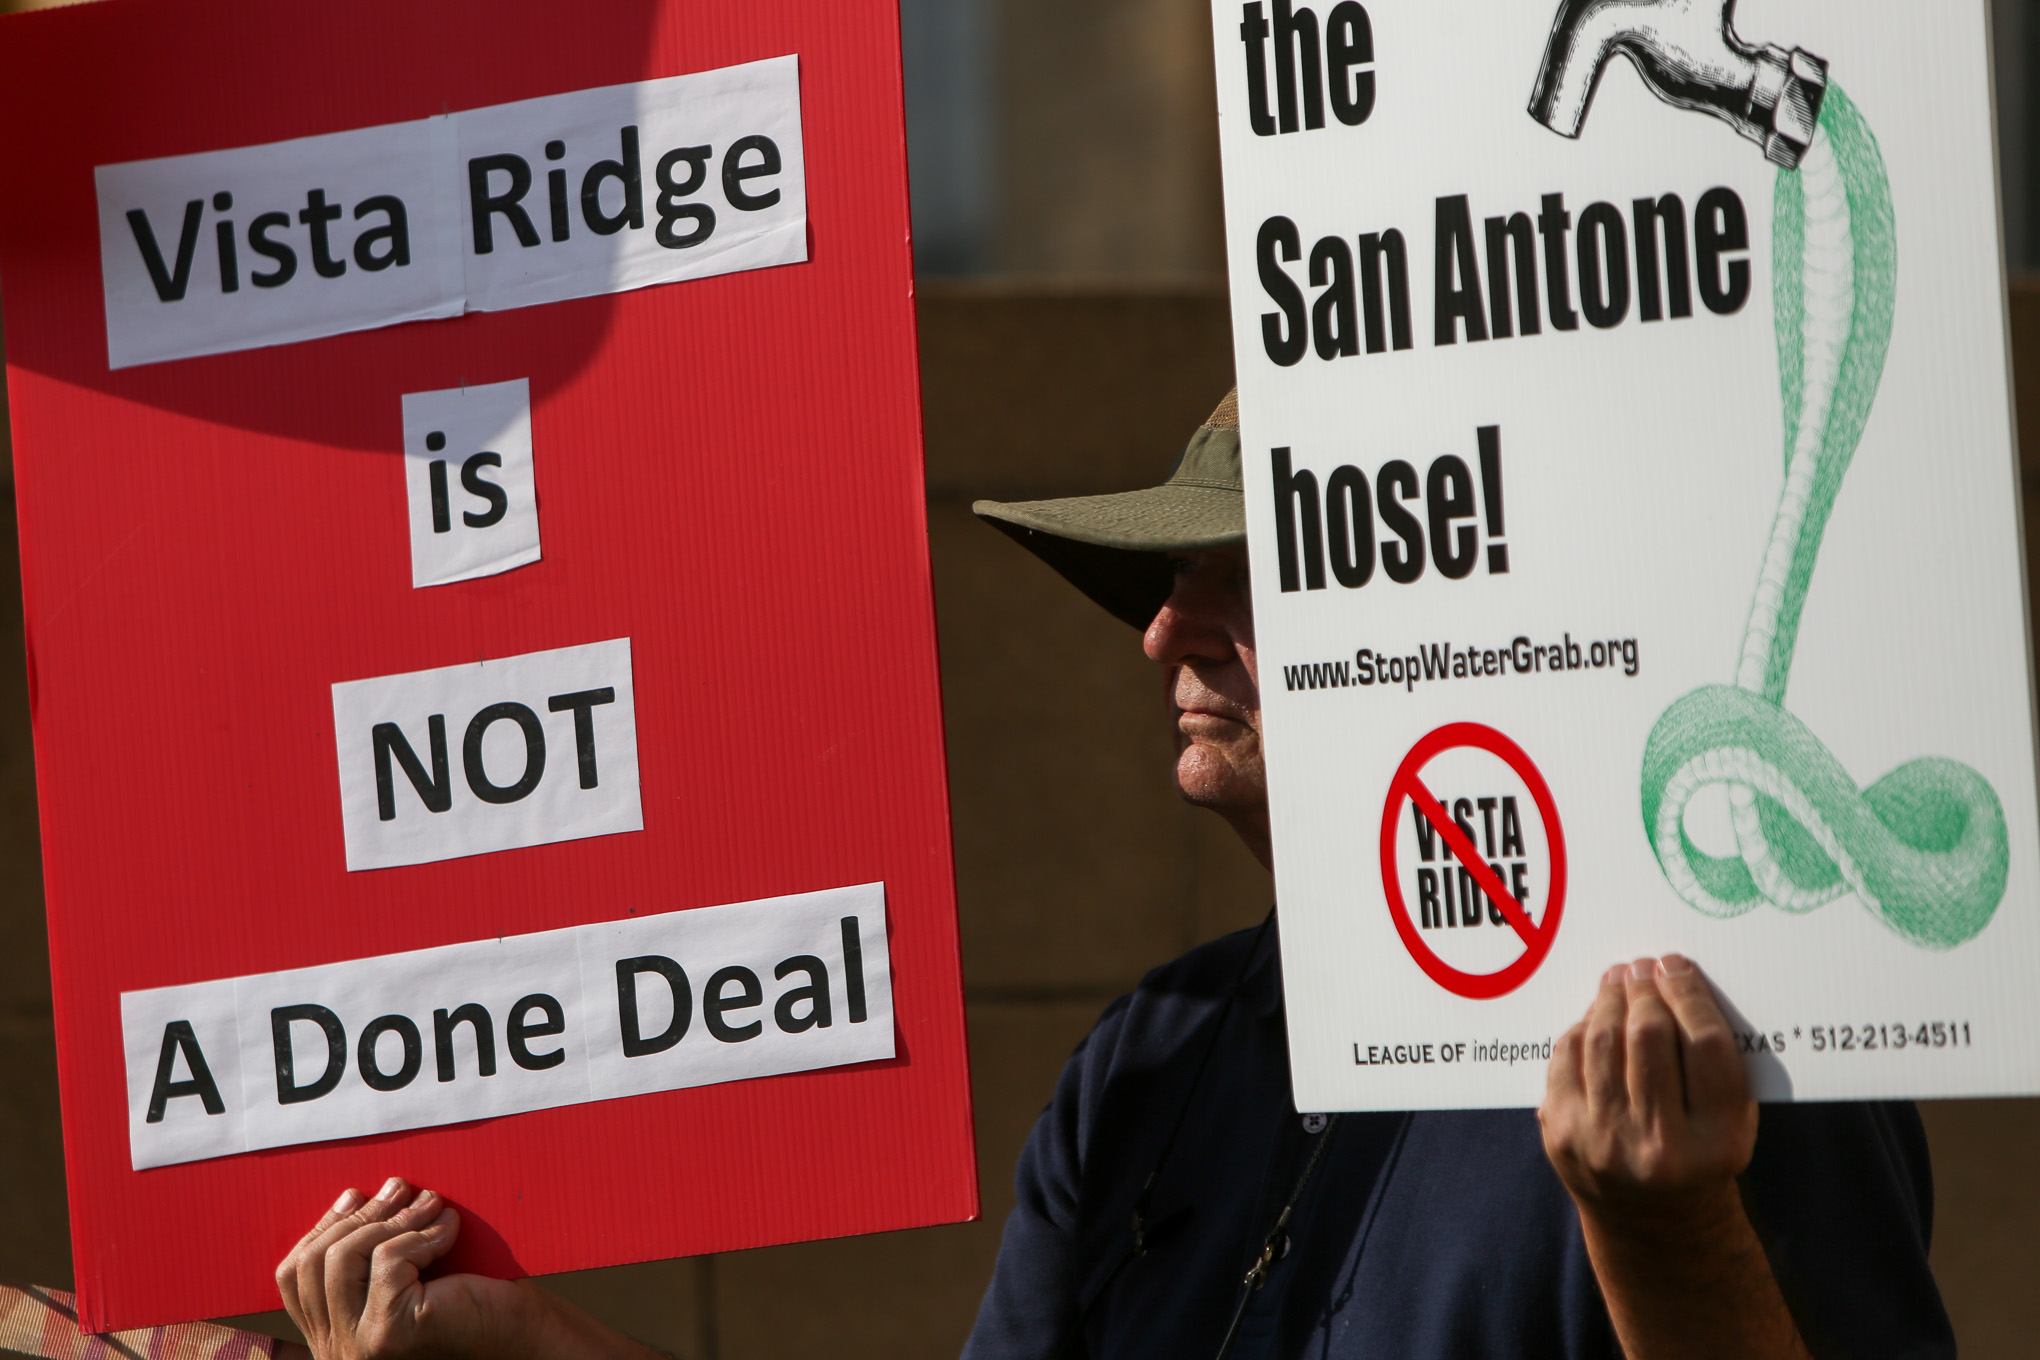 Alan Montemayor holds up two signs in opposition to the Vista Ridge Pipeline which Mayor Taylor strongly supports.